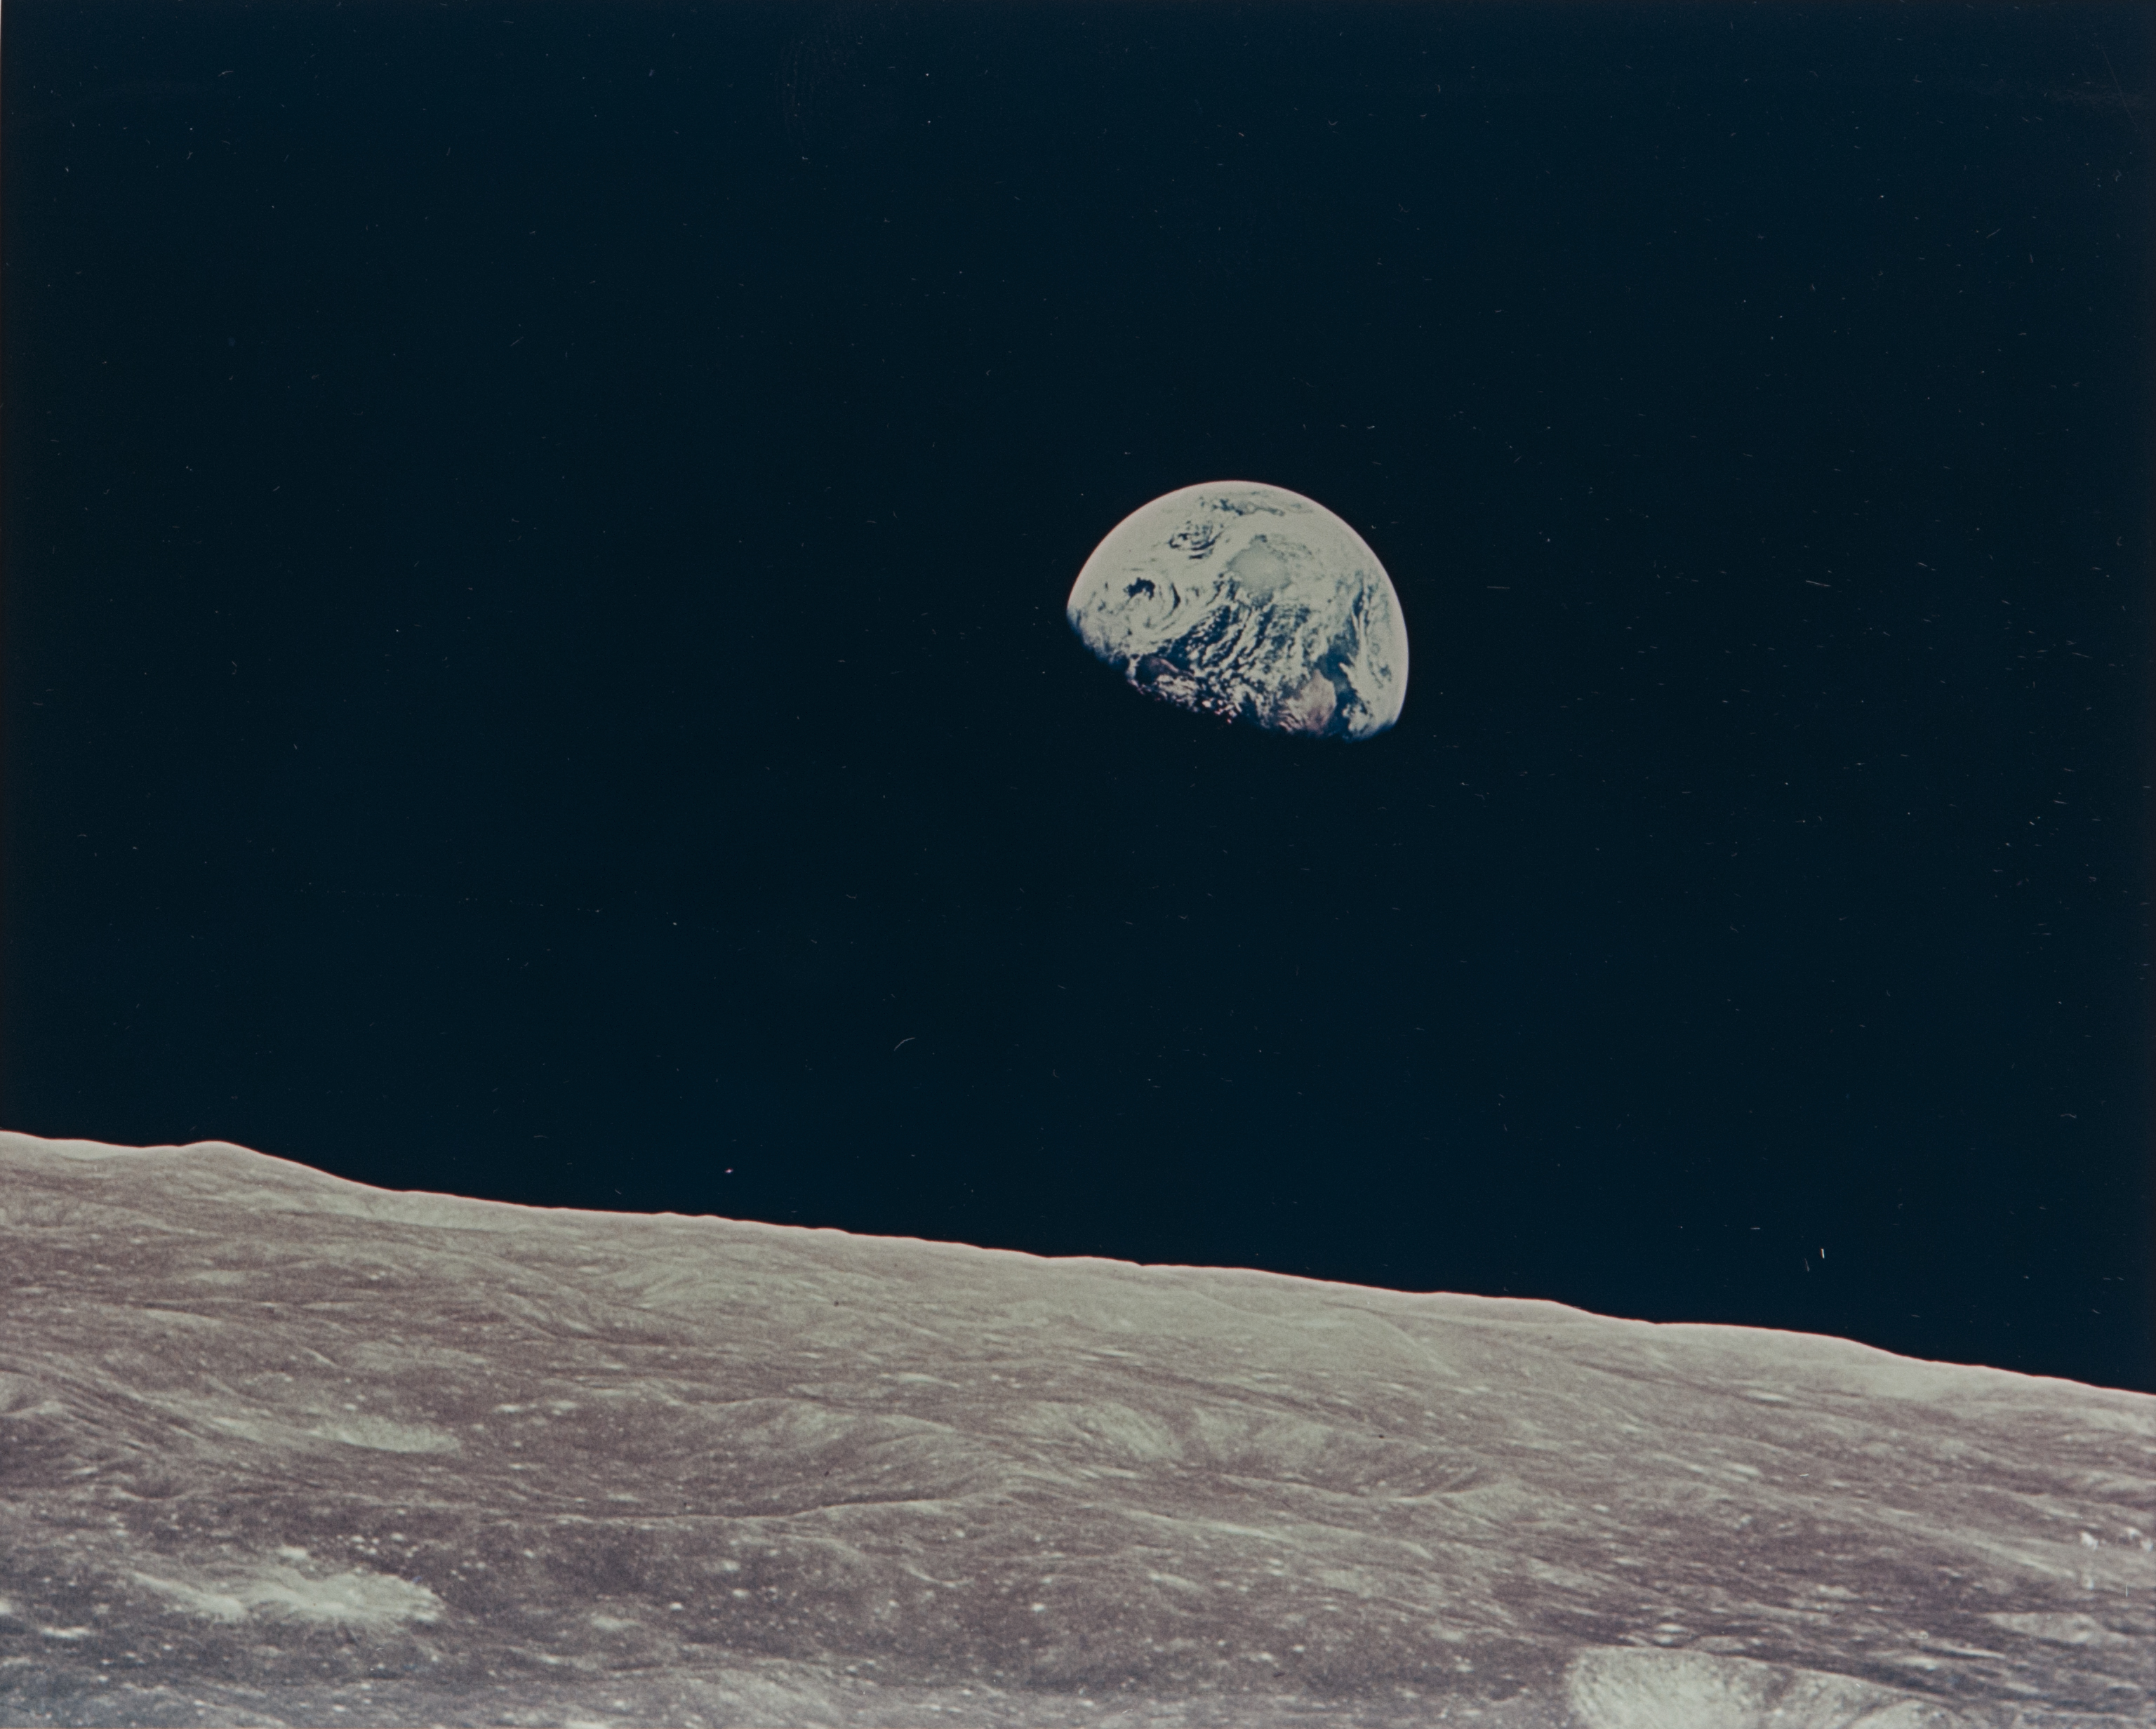 William Anders (American, b. 1933) First Earthrise seen by human eyes, Apollo 8, December 1968. Vintage chromogenic print on fiber-based Kodak paper with a 'A Kodak Paper' watermark on the verso